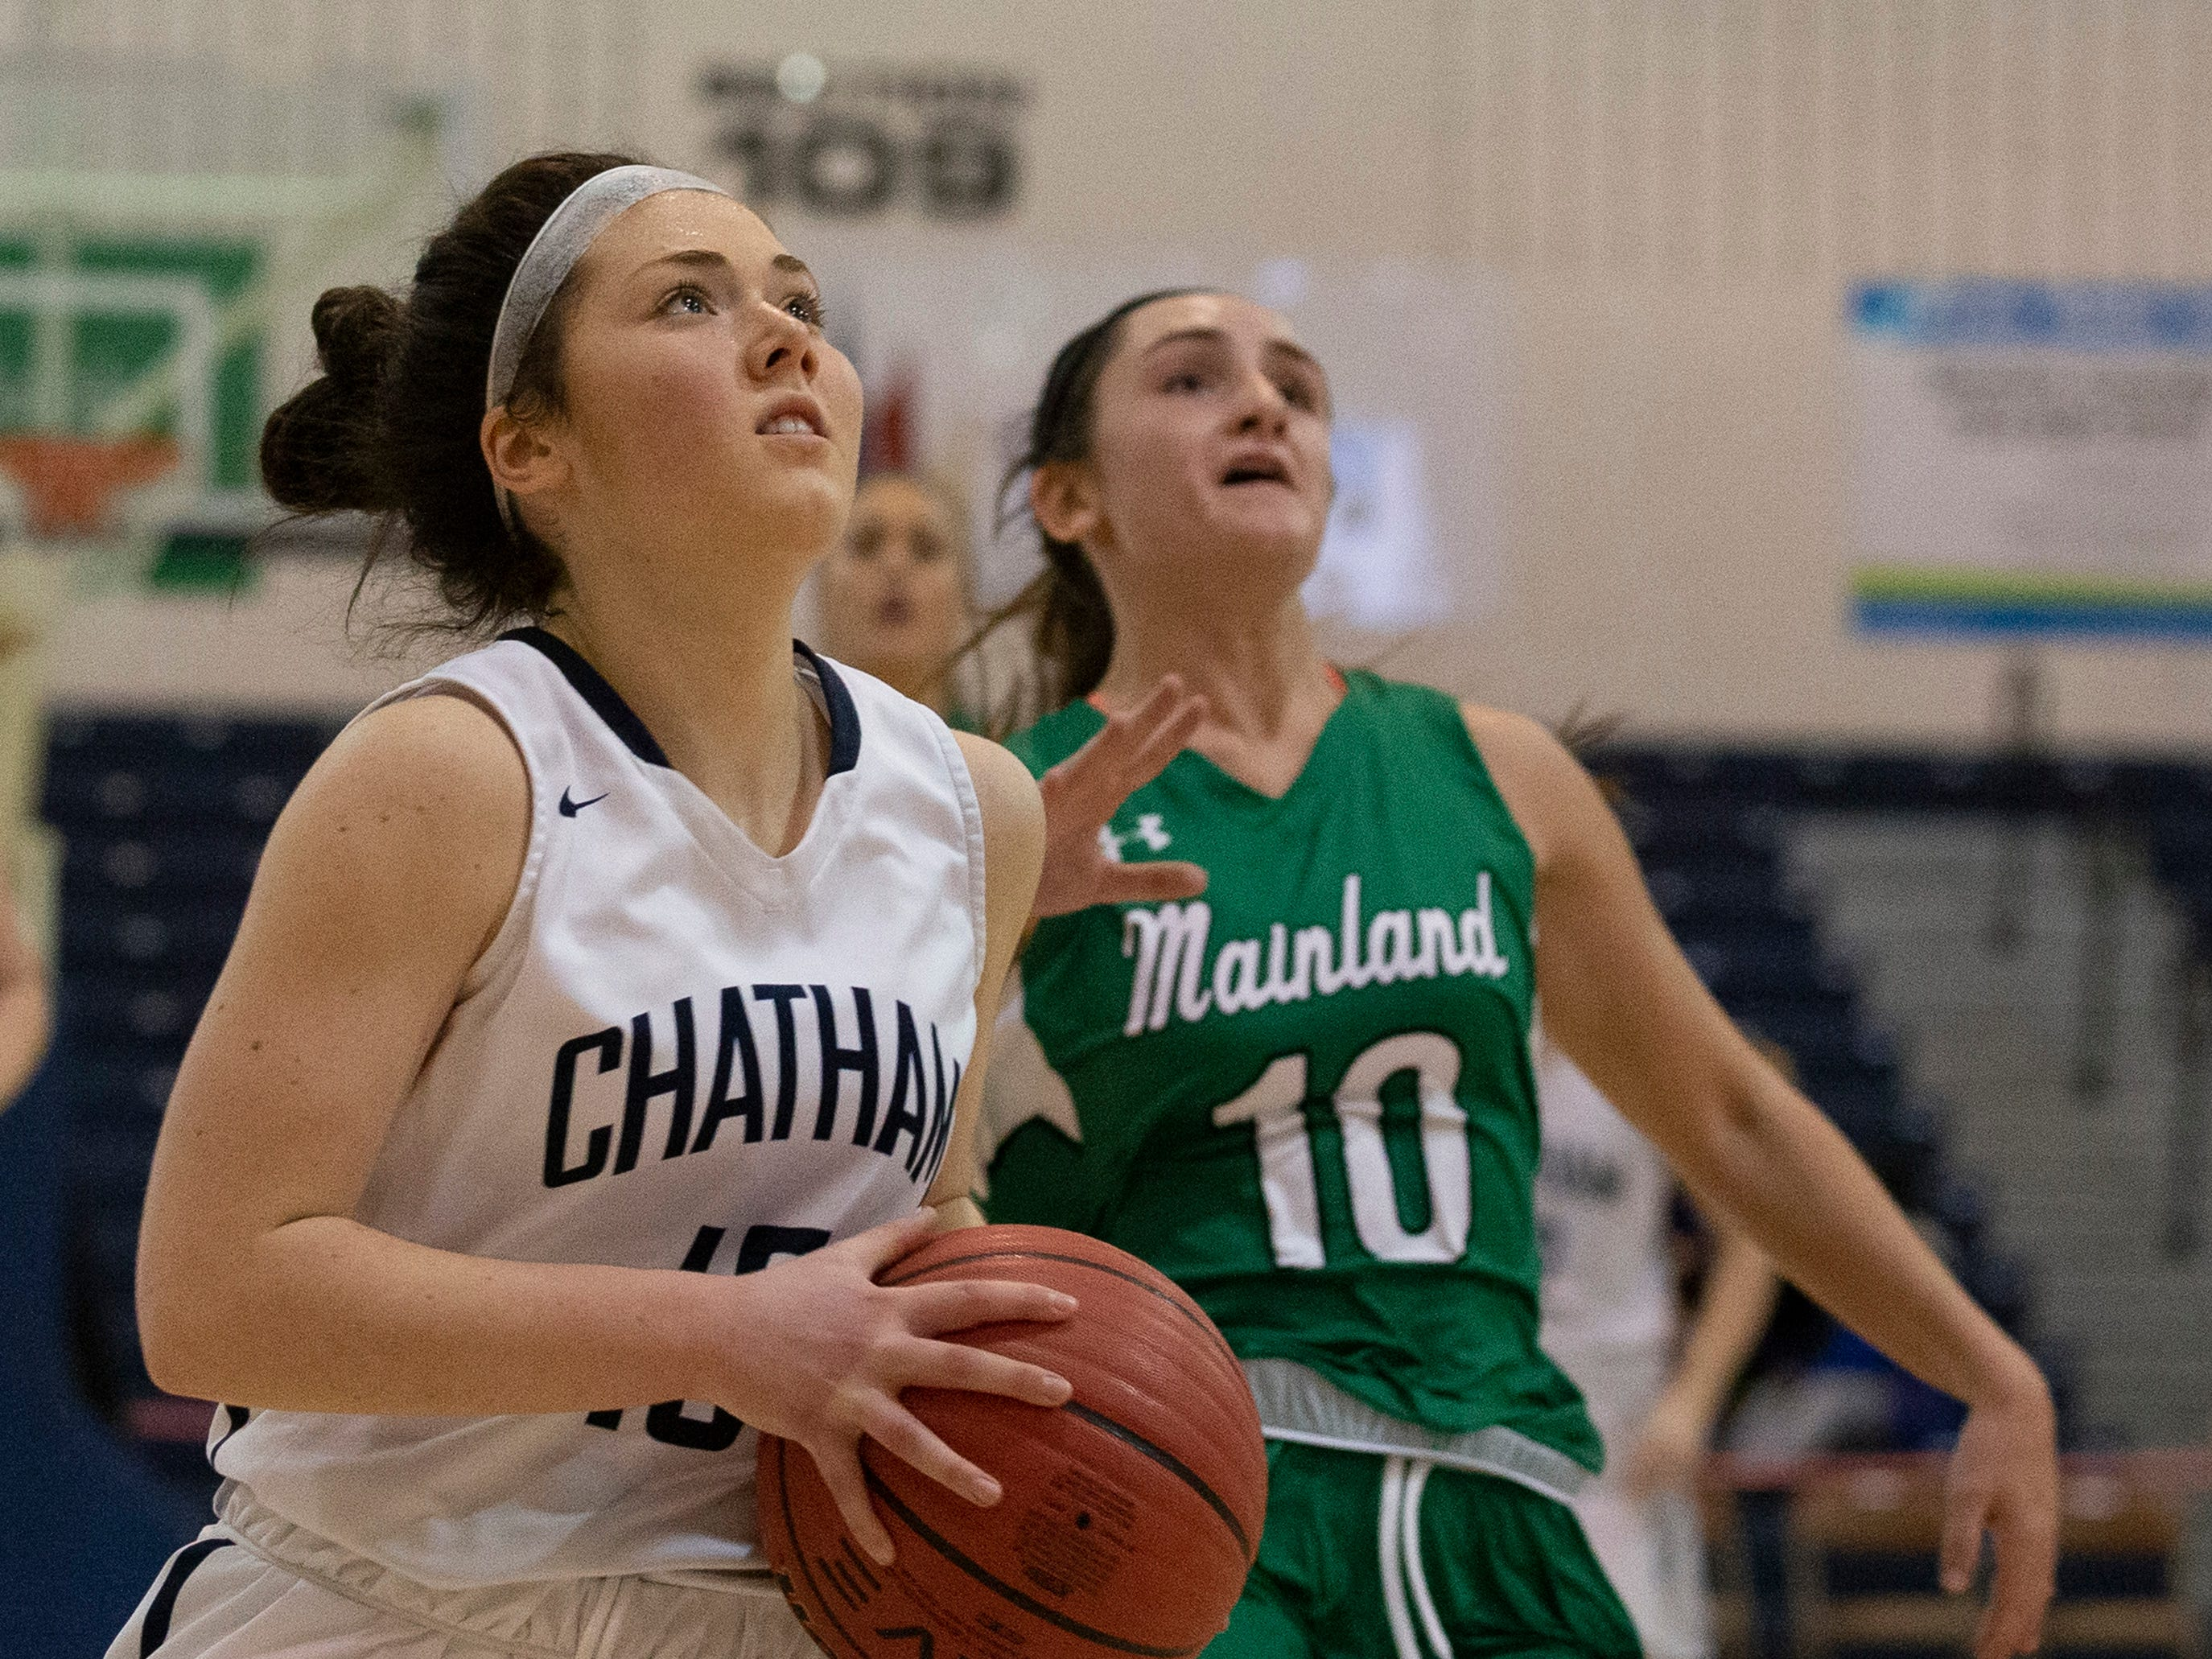 Tess Ford, Chatham, drives to the basket. Chatham Girls Basketball vs Mainland in Girls Group III Final in Toms River on March 10, 2019.